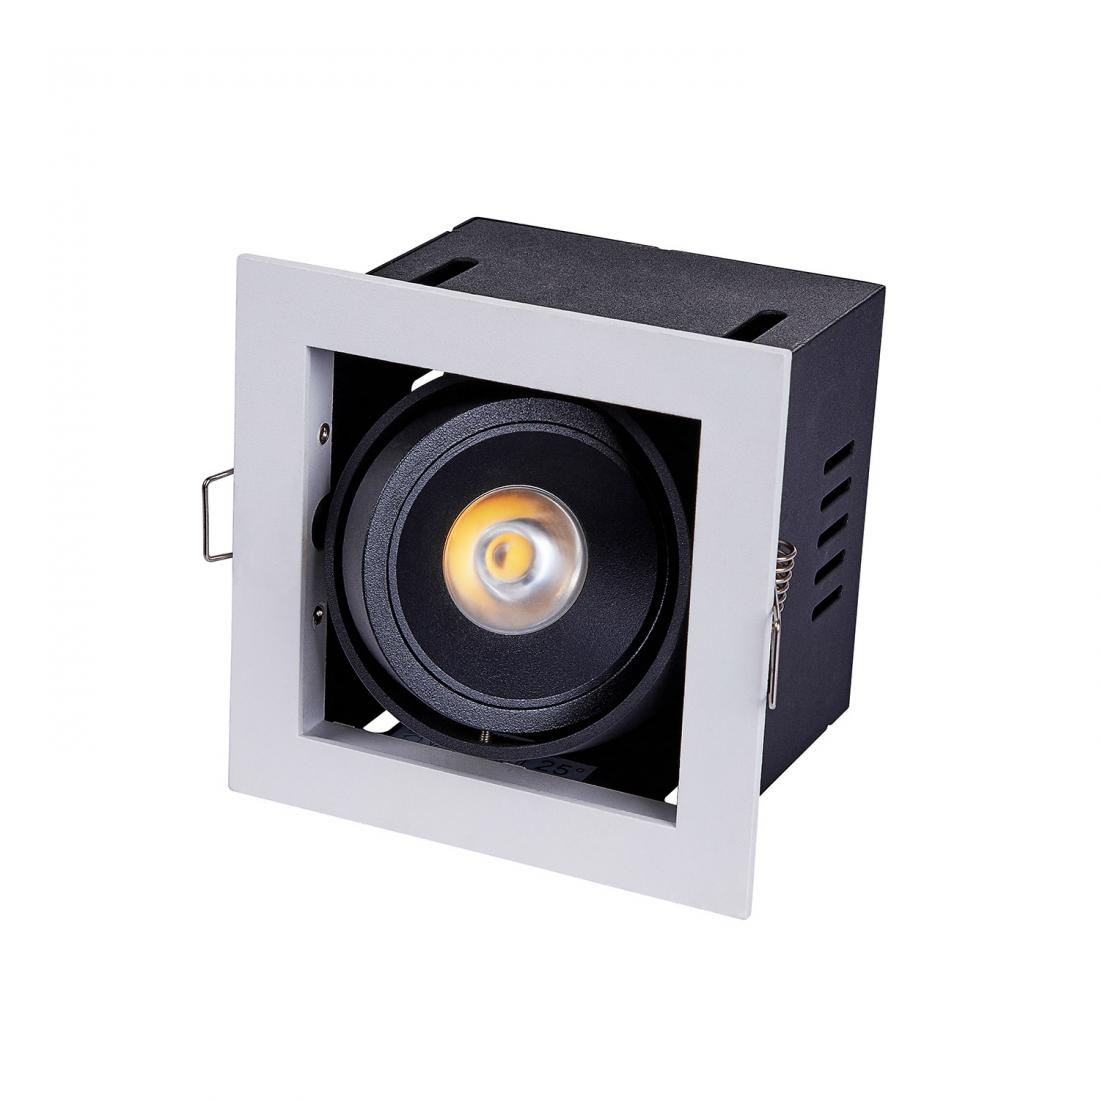 10W Commercial COB LED recessed Gimbal downlight